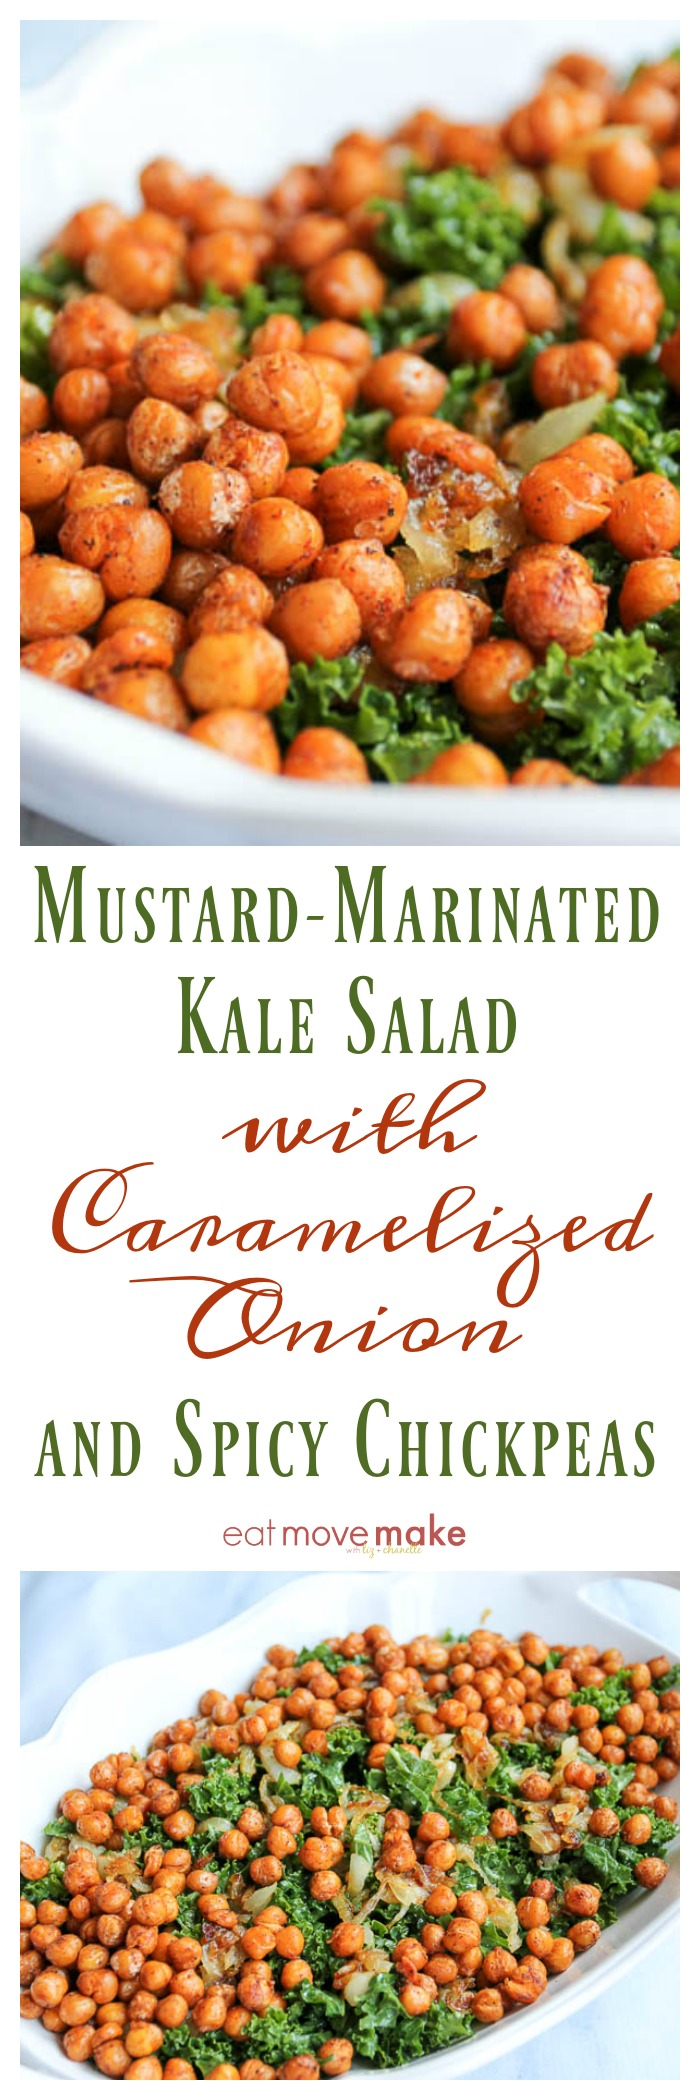 Mustard-Marinated Kale Salad with Caramelized Onion and Spicy Chickpeas